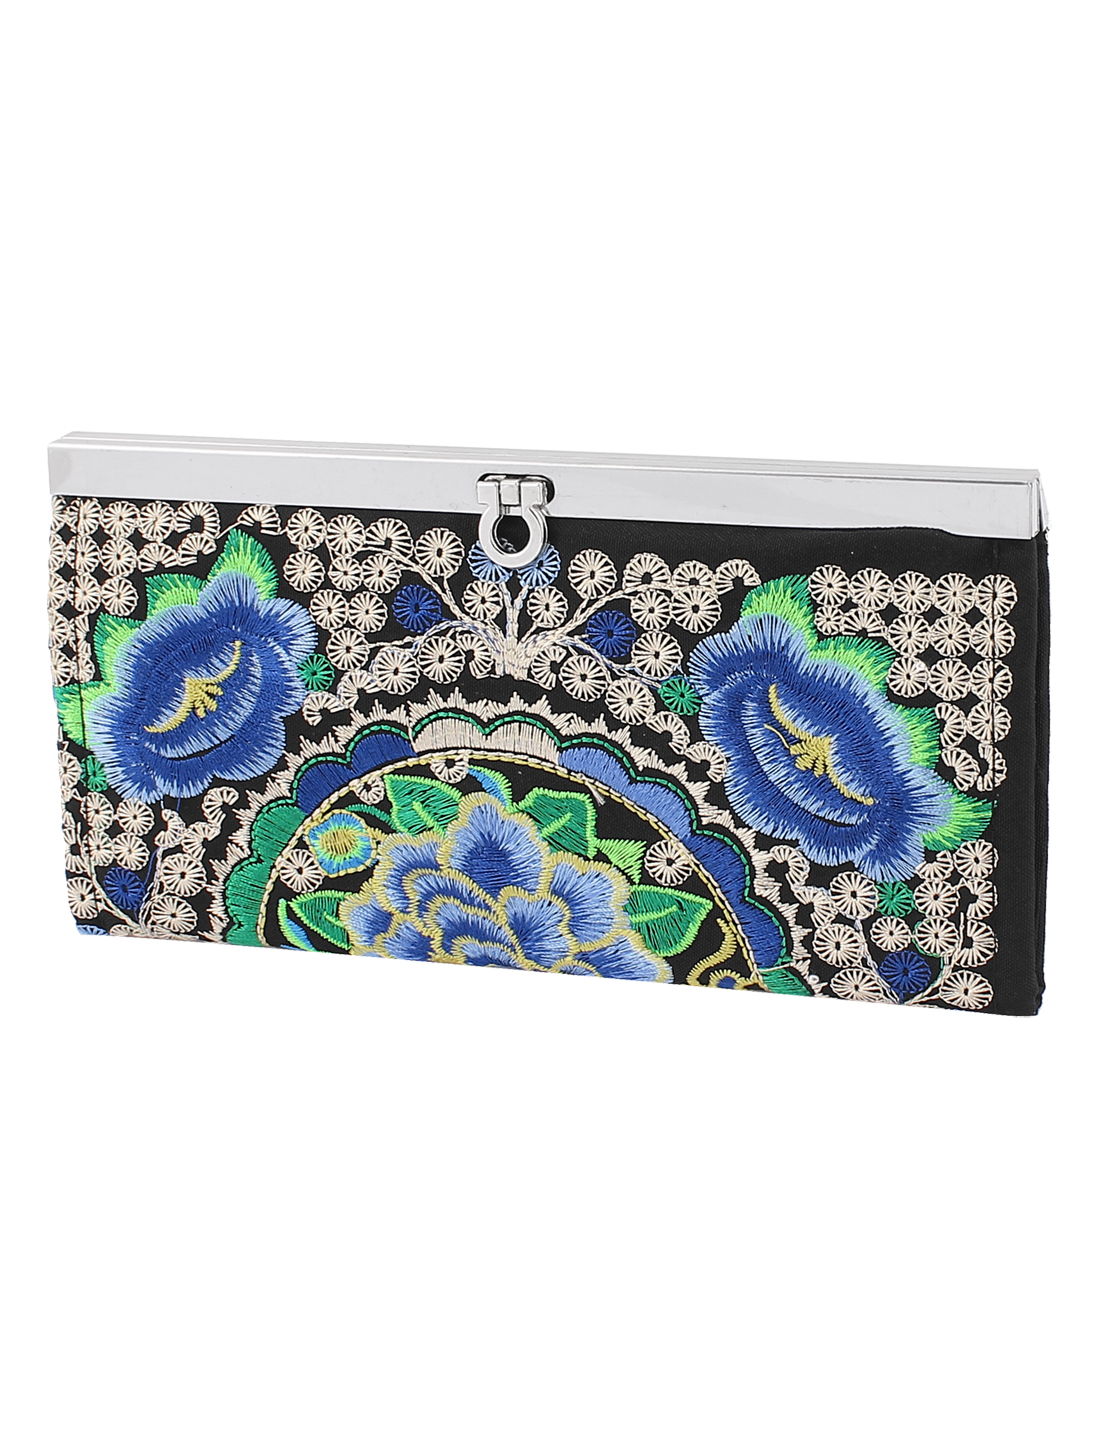 Embroider Flower Silver Plated Band Frame Clutch Purse Handbag Wallet